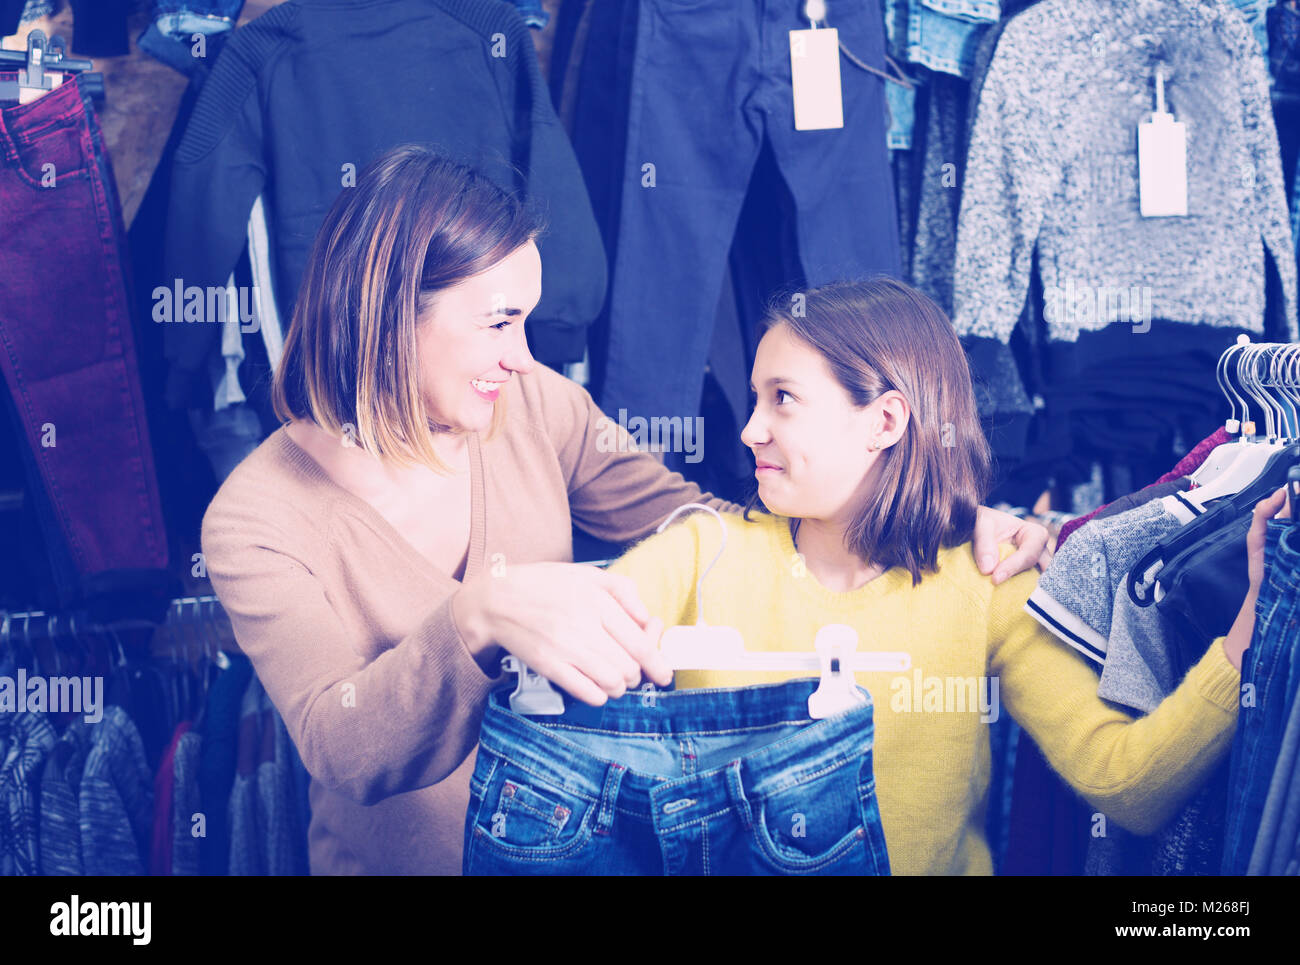 Mother and daughter are choosing trendy jeans in children's